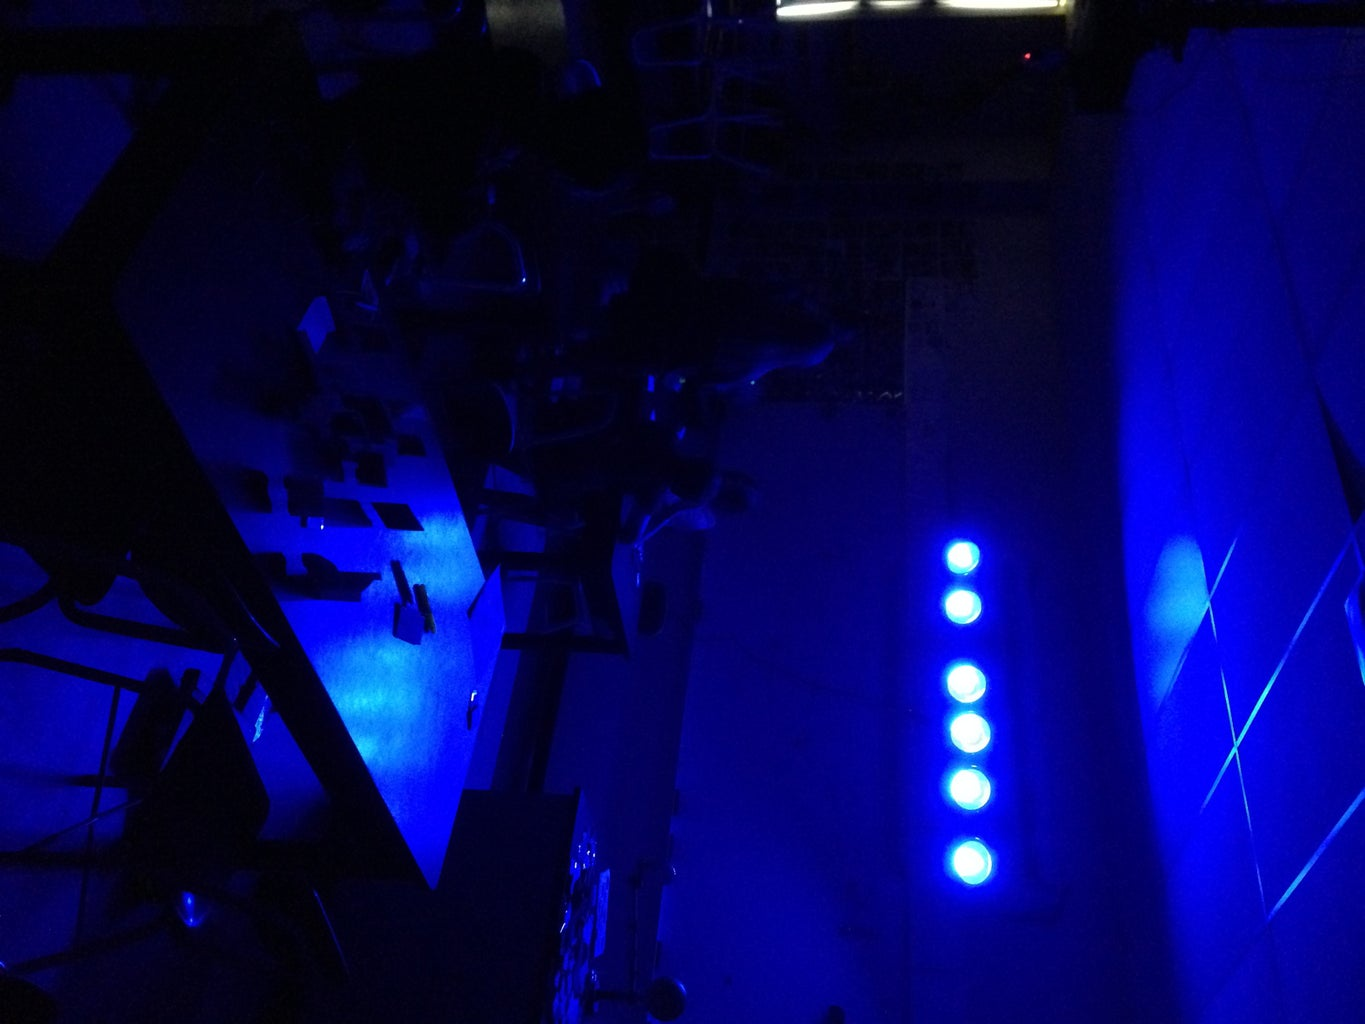 Testing Out the Colored LEDs